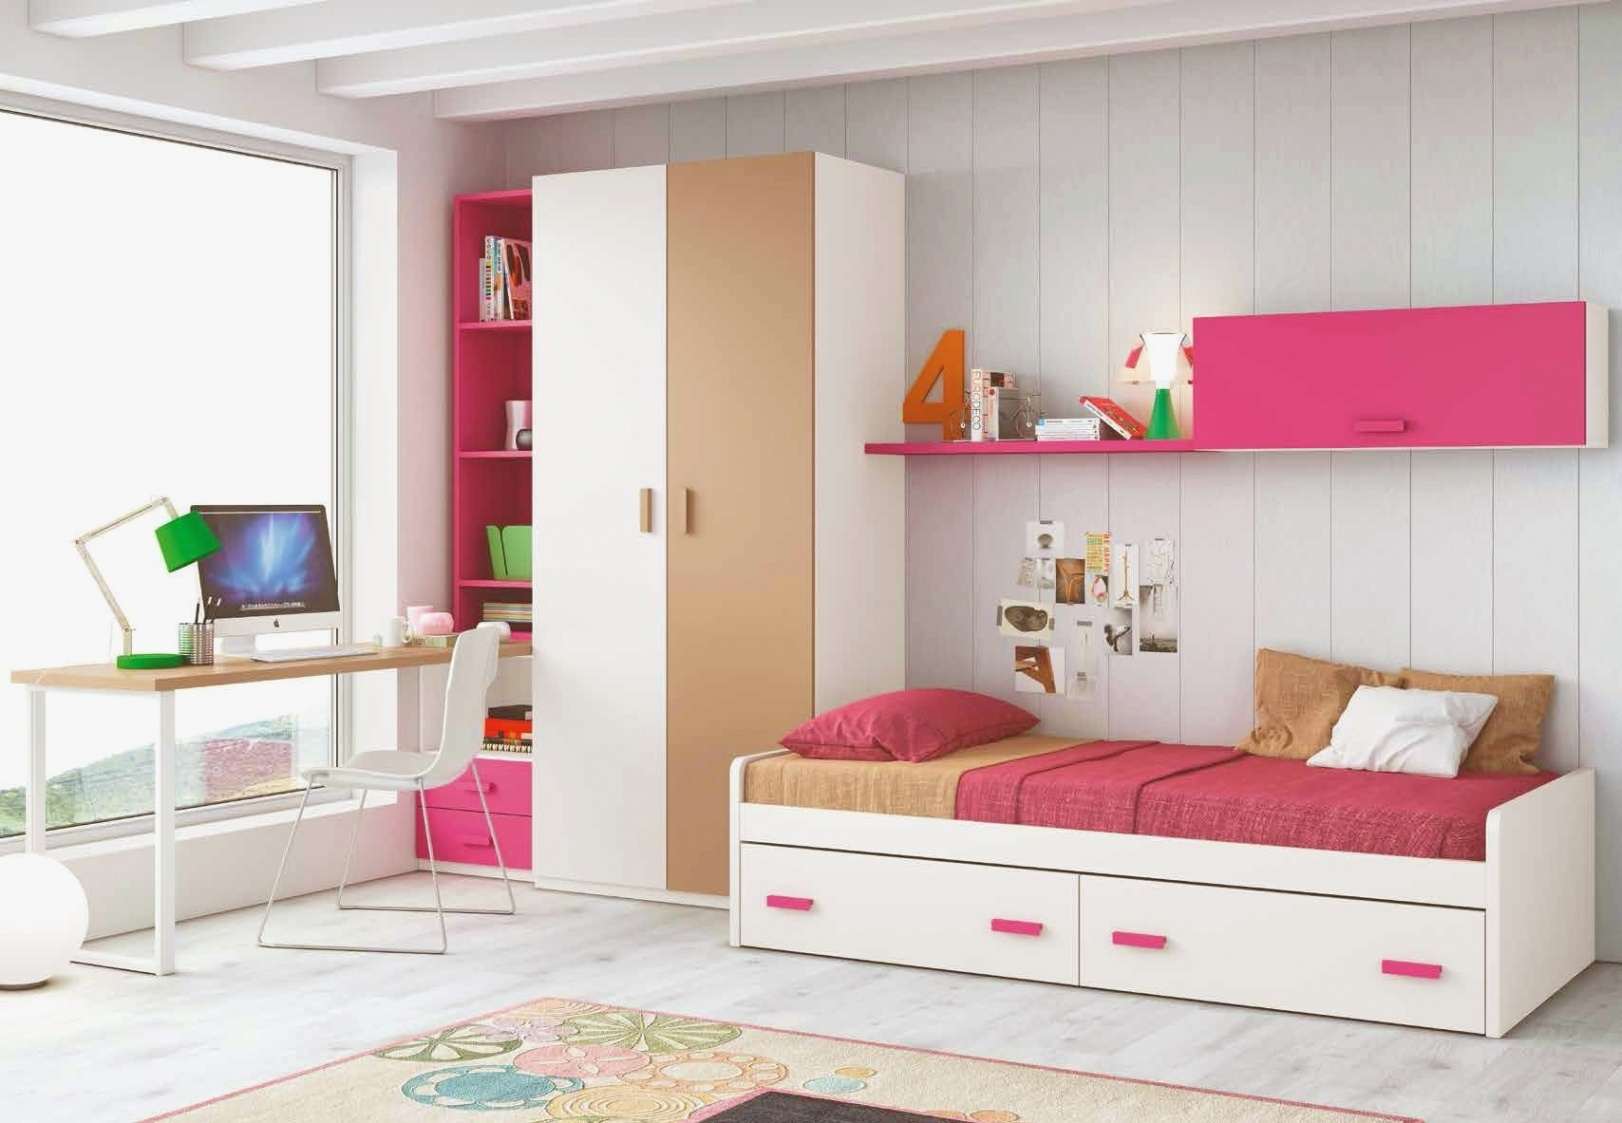 Photo Chambre Ado Fille Moderne Great Chambre Ado Fille Moderne Unique Chambre Ado Fille 17 Ans